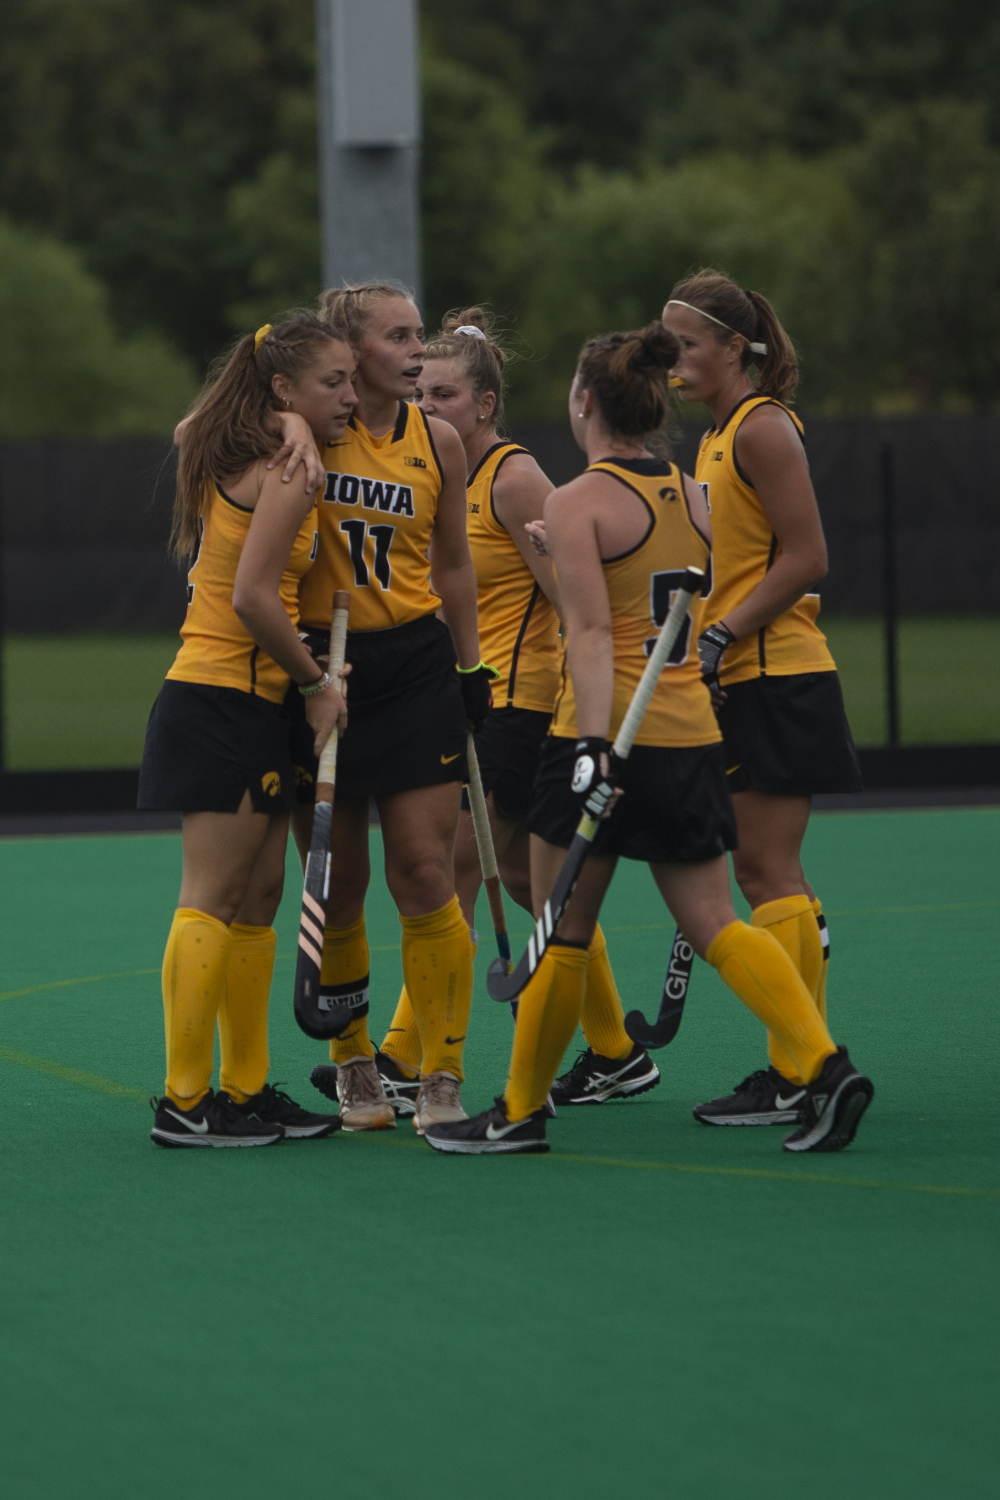 Iowa+defender+Emily+Duel+and+midfielder+Katie+Birch+hug+during+a+field+hockey+game+between+Iowa+and+Columbia+at+Grant+Field+on+Sunday%2C+September+8%2C+2019.+The+Hawkeyes+defeated+the+Lions%2C+3-1.